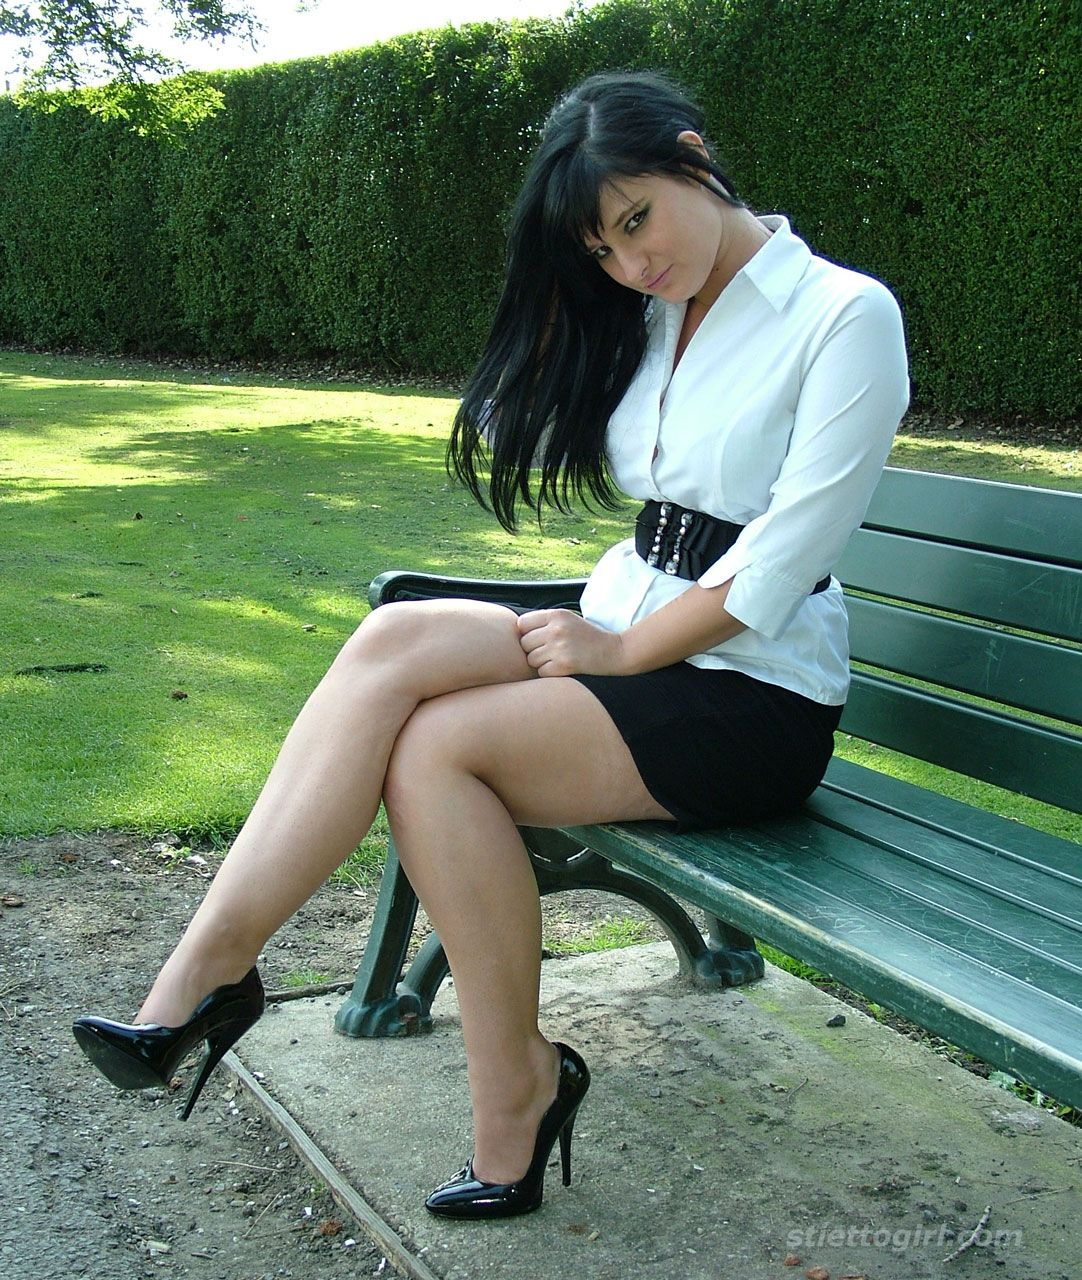 Thin Black Haired Girl Nude